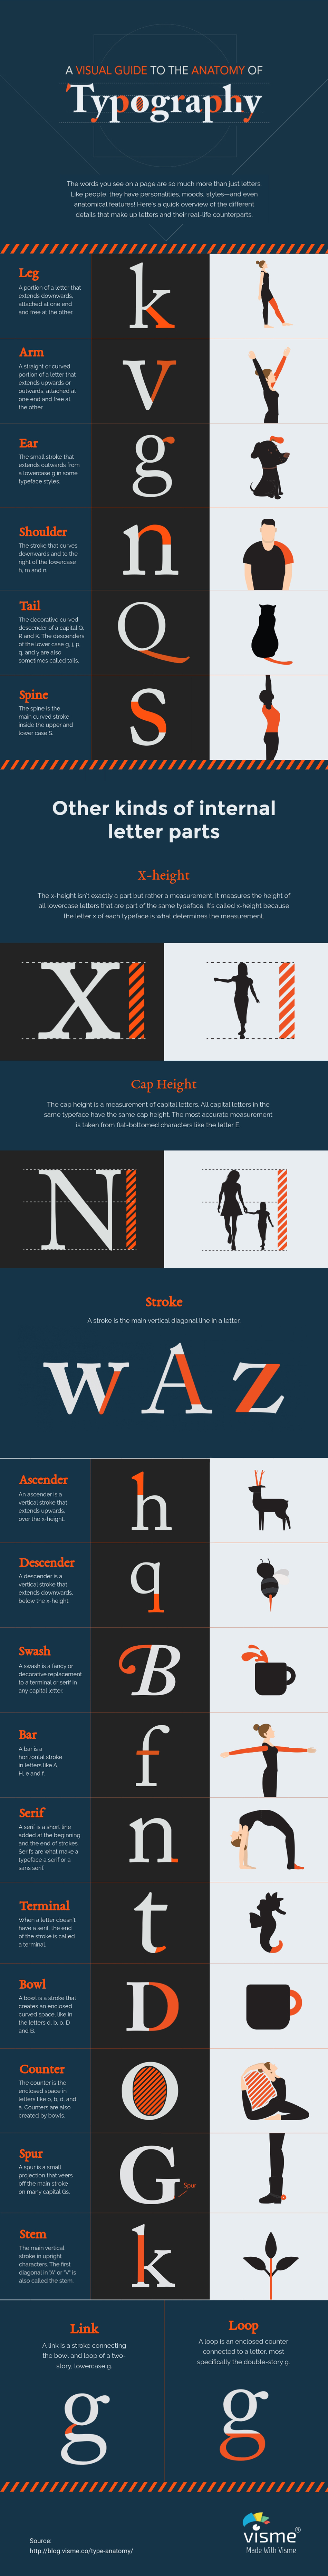 Type Anatomy A Visual Guide To The Parts Of Letters Visual